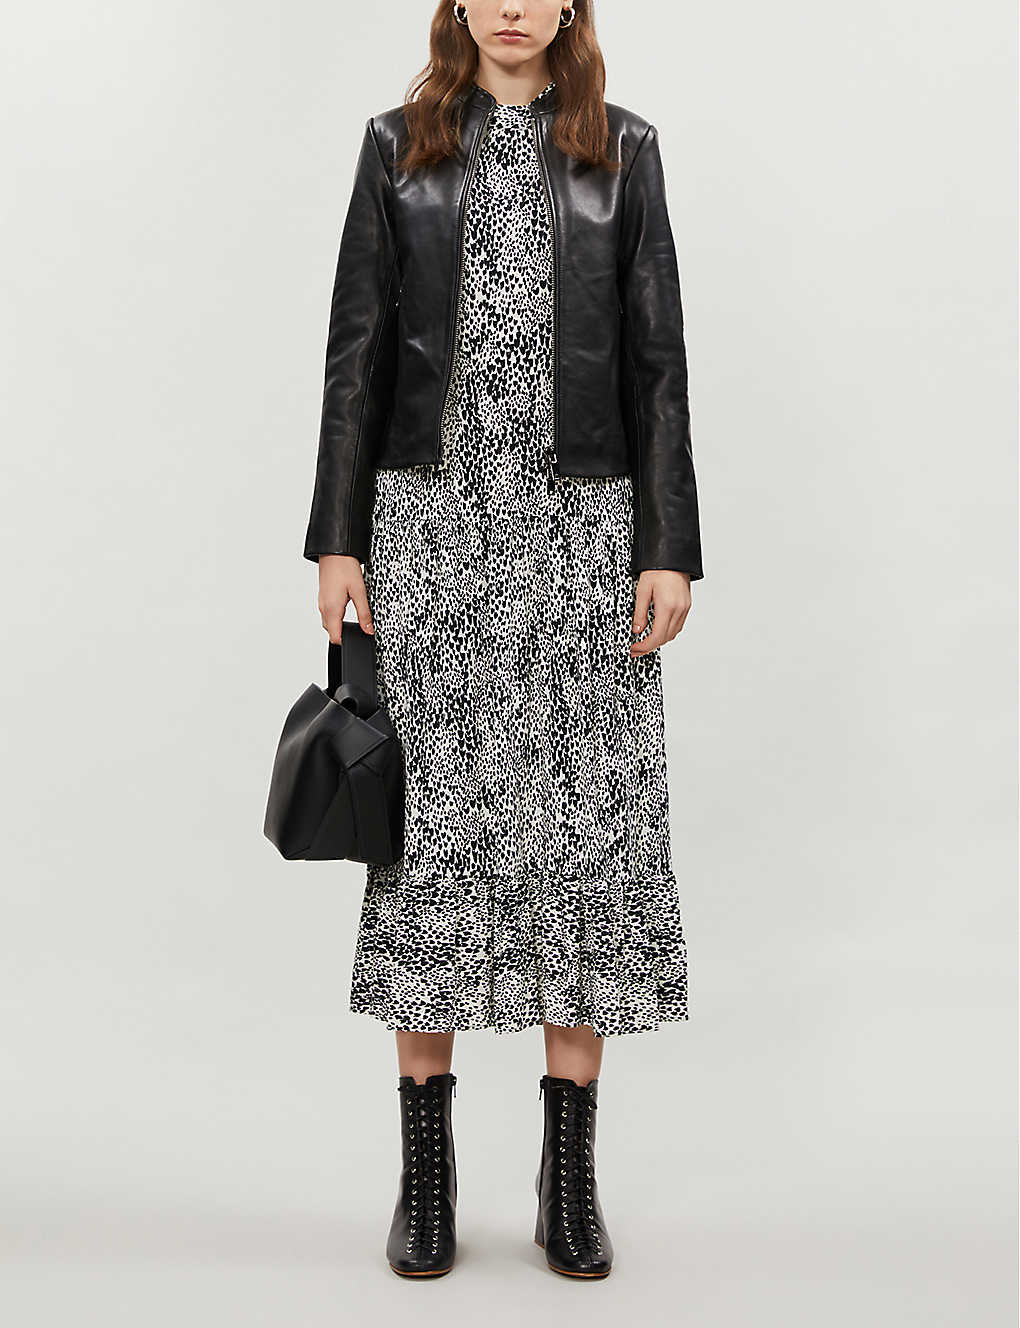 Selfridges: Up to 40% off on select women's wear